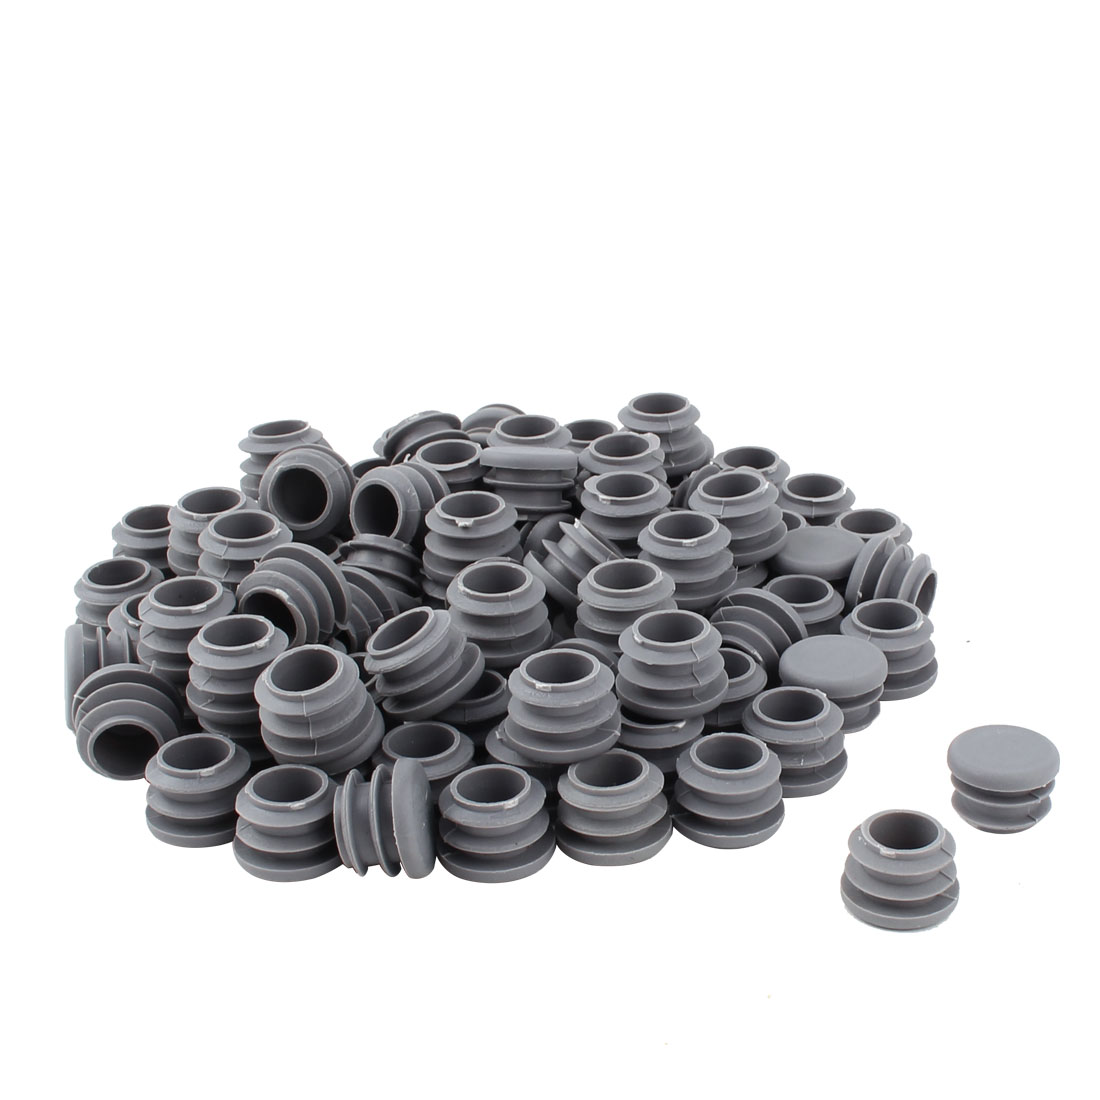 Furniture Table Chair Plastic Round Tube Pipe Insert Cover Protector Gray 19mm Dia 80pcs